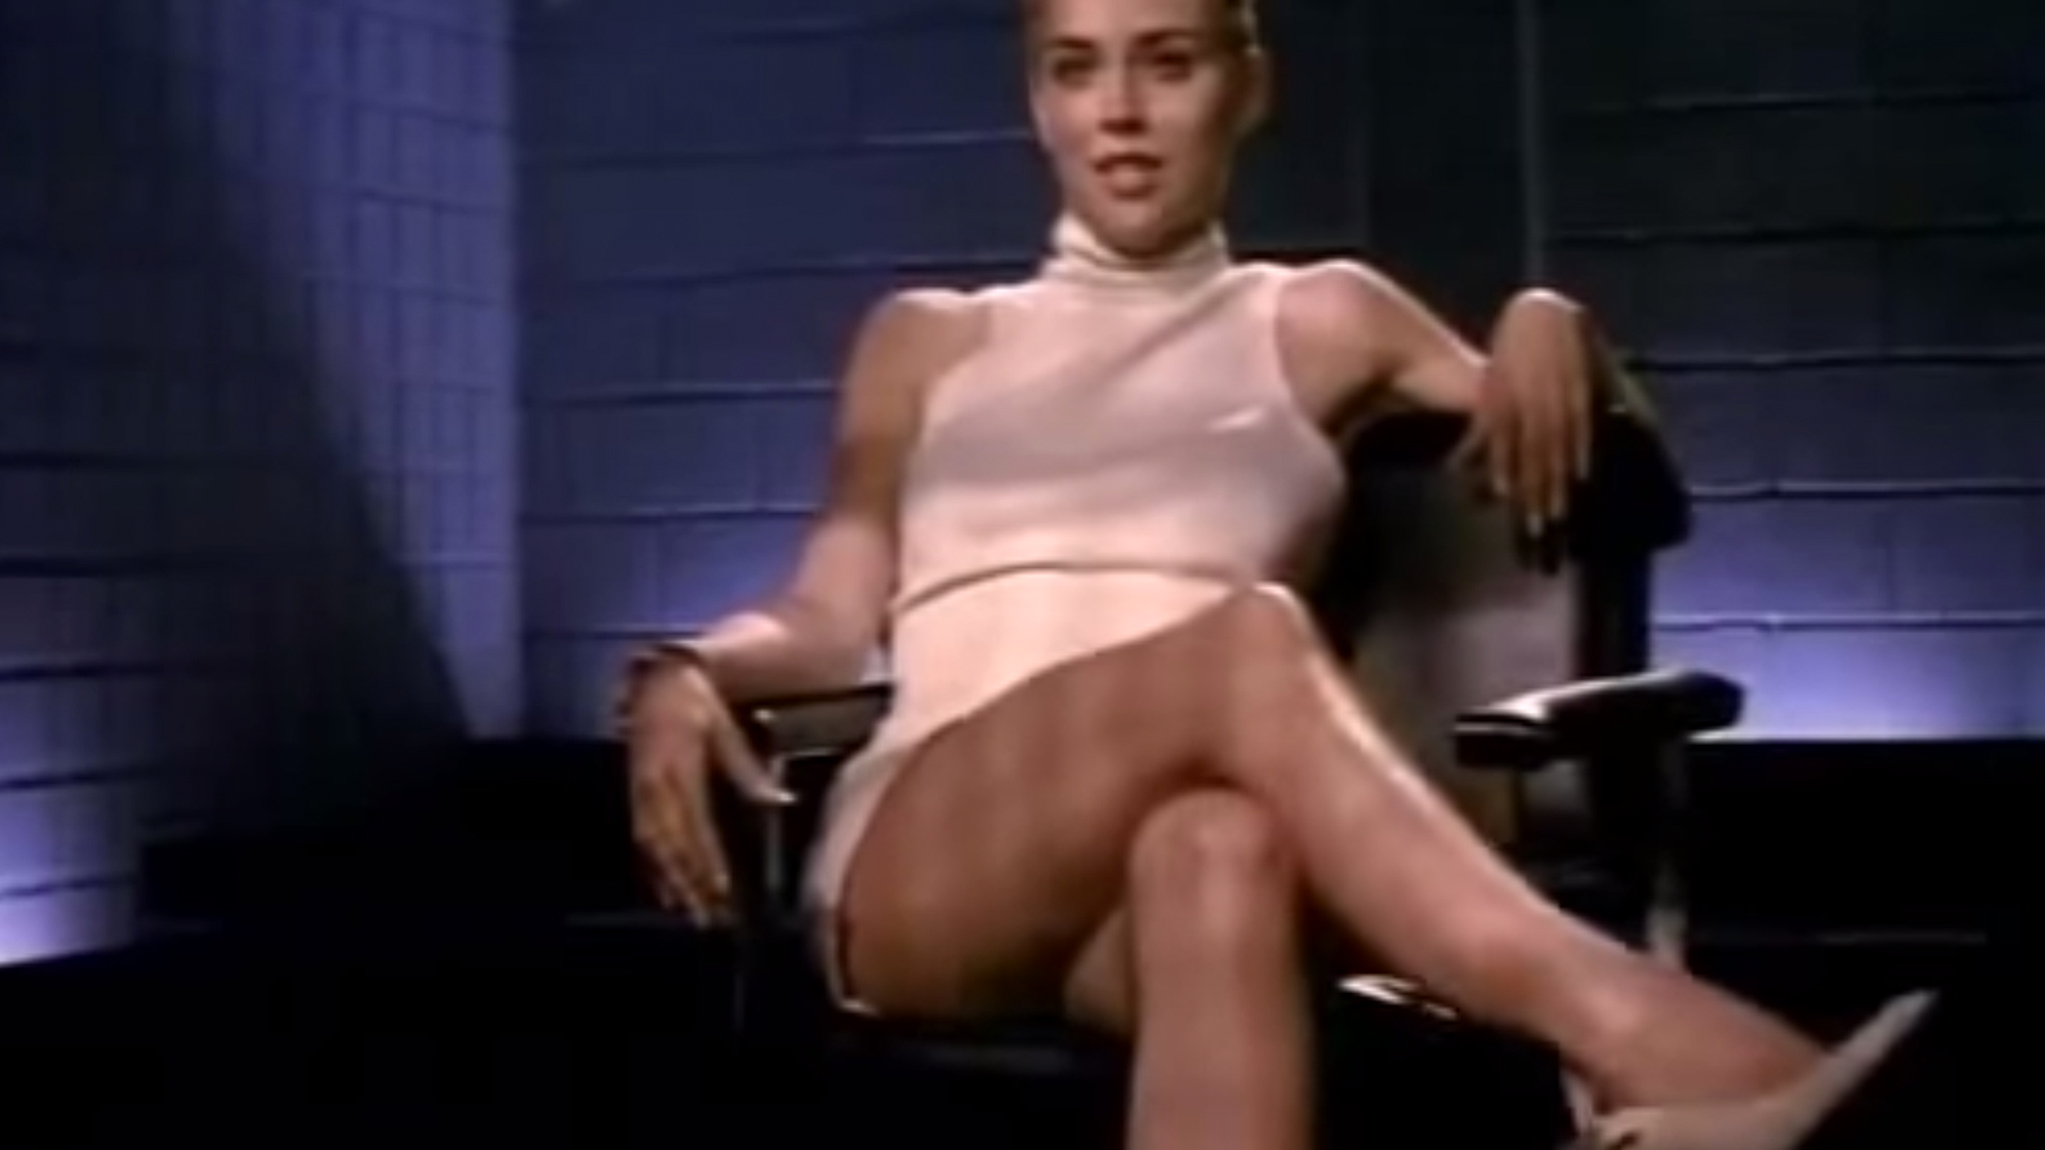 100 sex scenes, Basic Instinct2